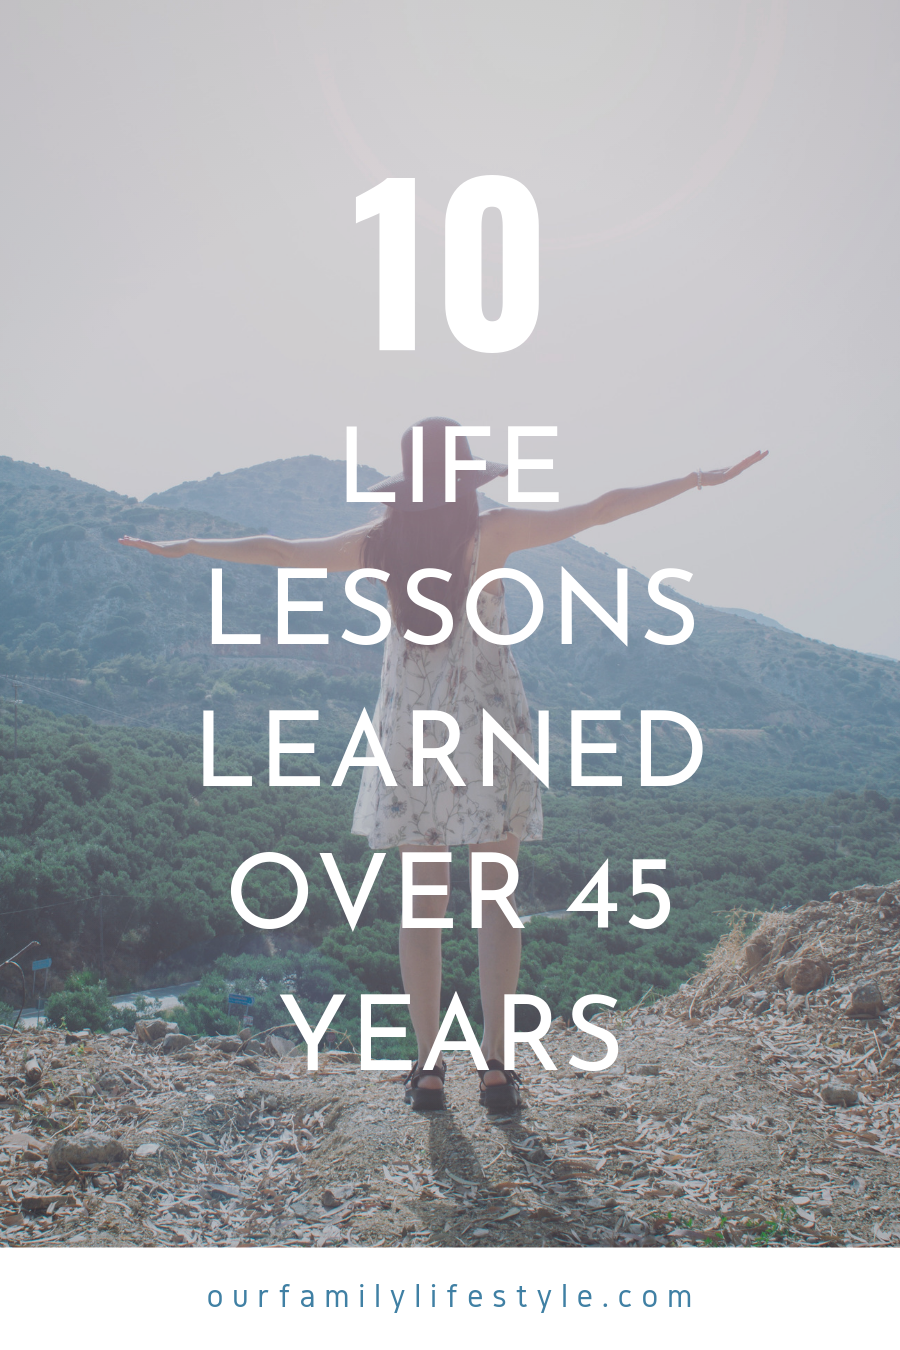 10 Life Lessons Learned Over 45 Years